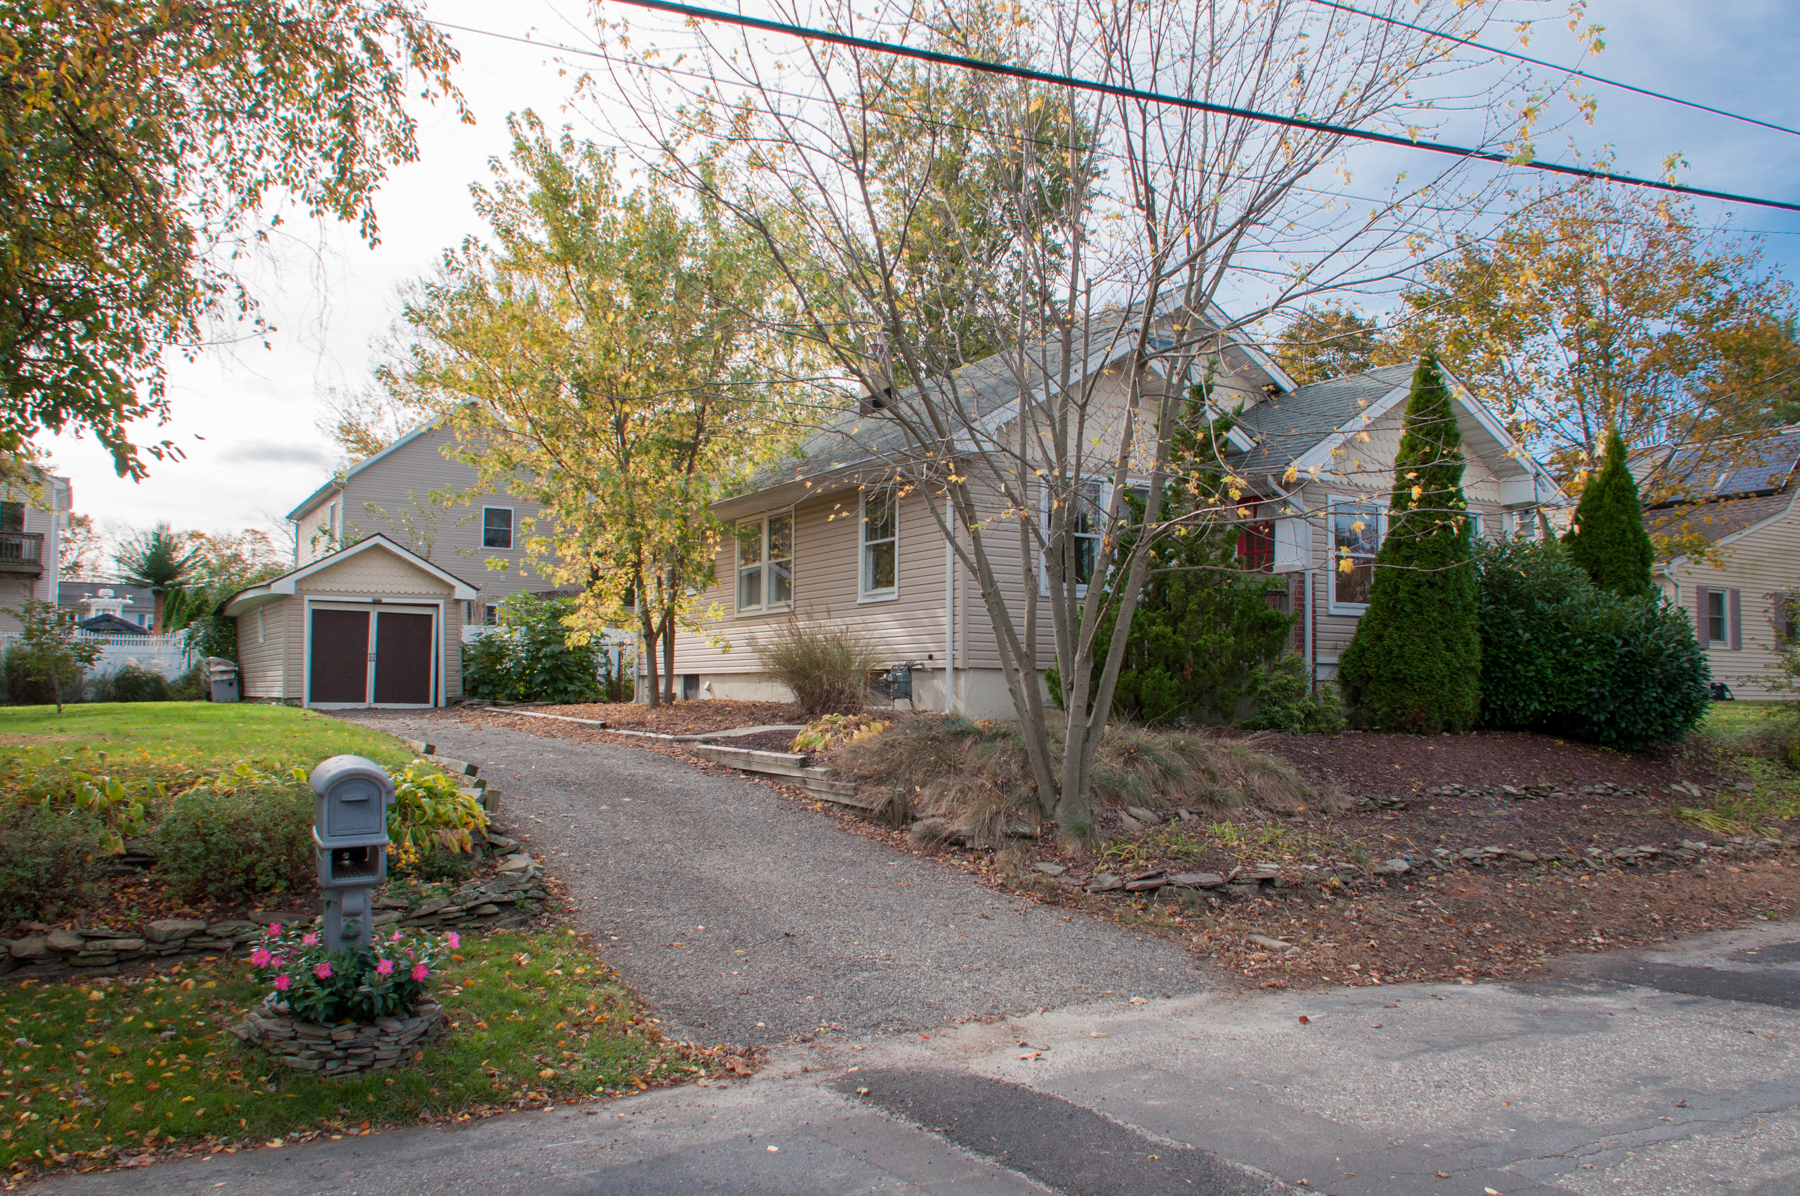 Single Family Home for Sale at Fantastic Opportunity 2817 Johnson St Wall, New Jersey 07719 United States